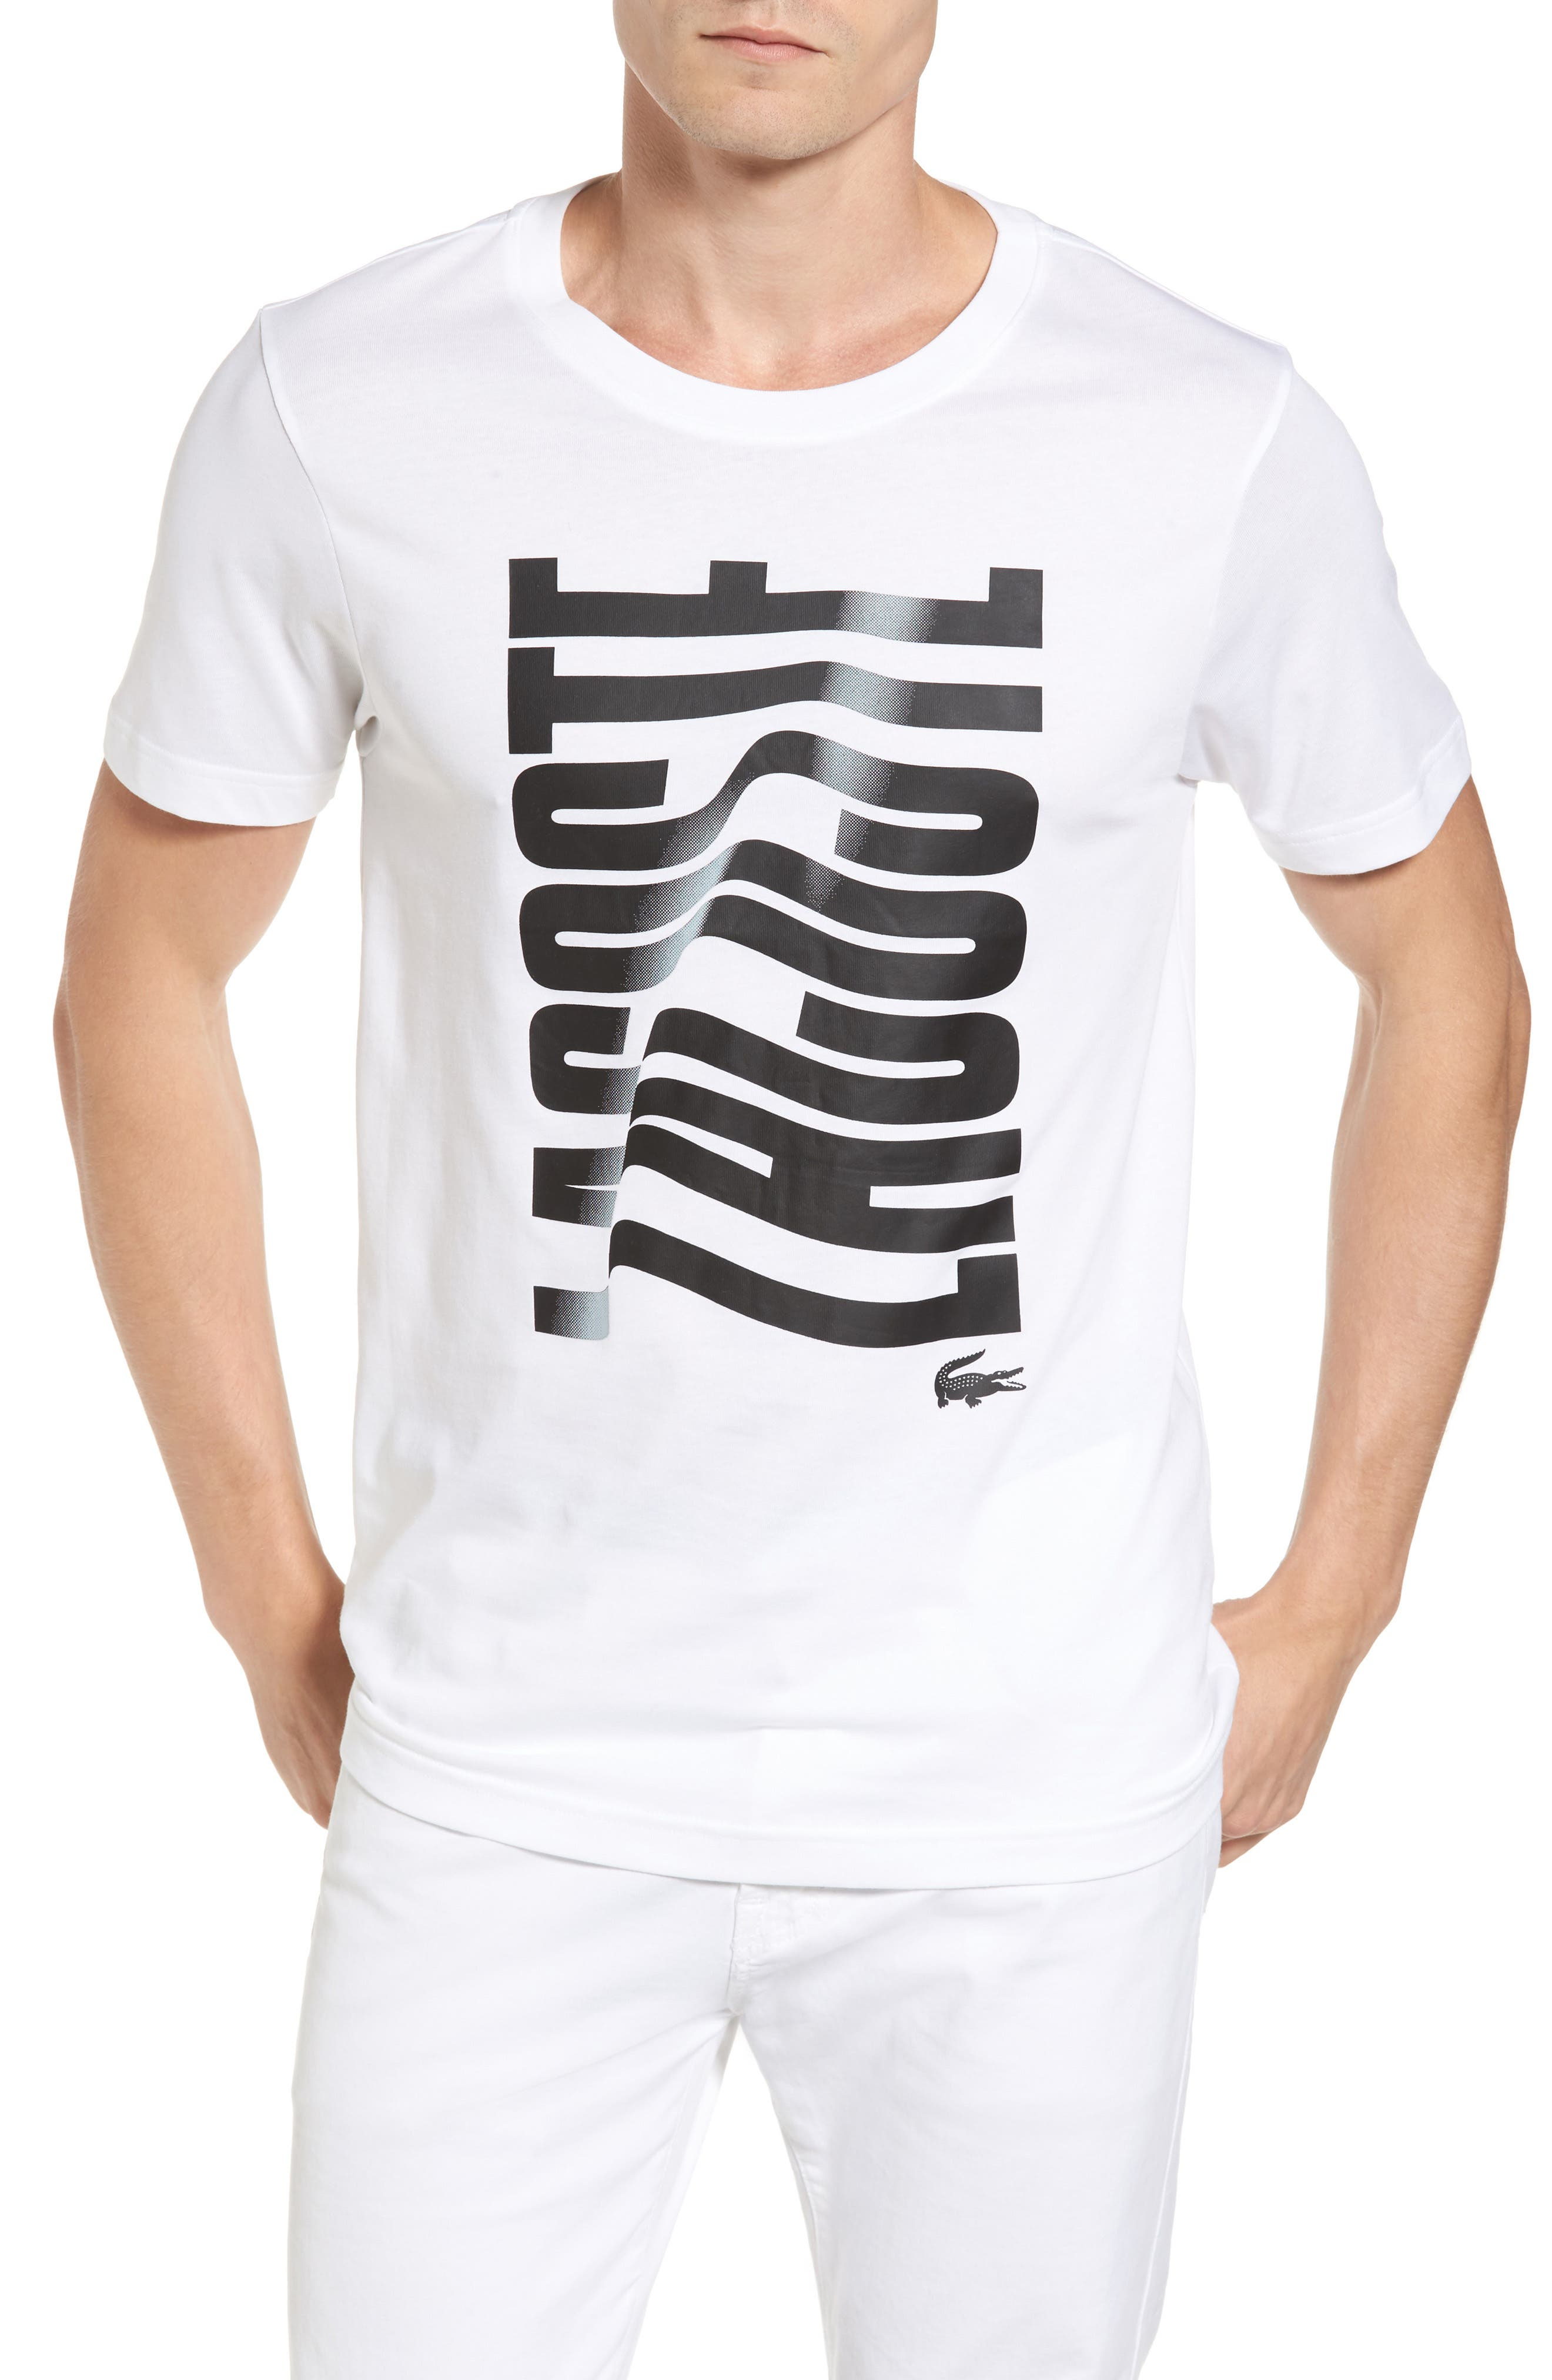 Main Image - Lacoste Vertical Graphic T-Shirt